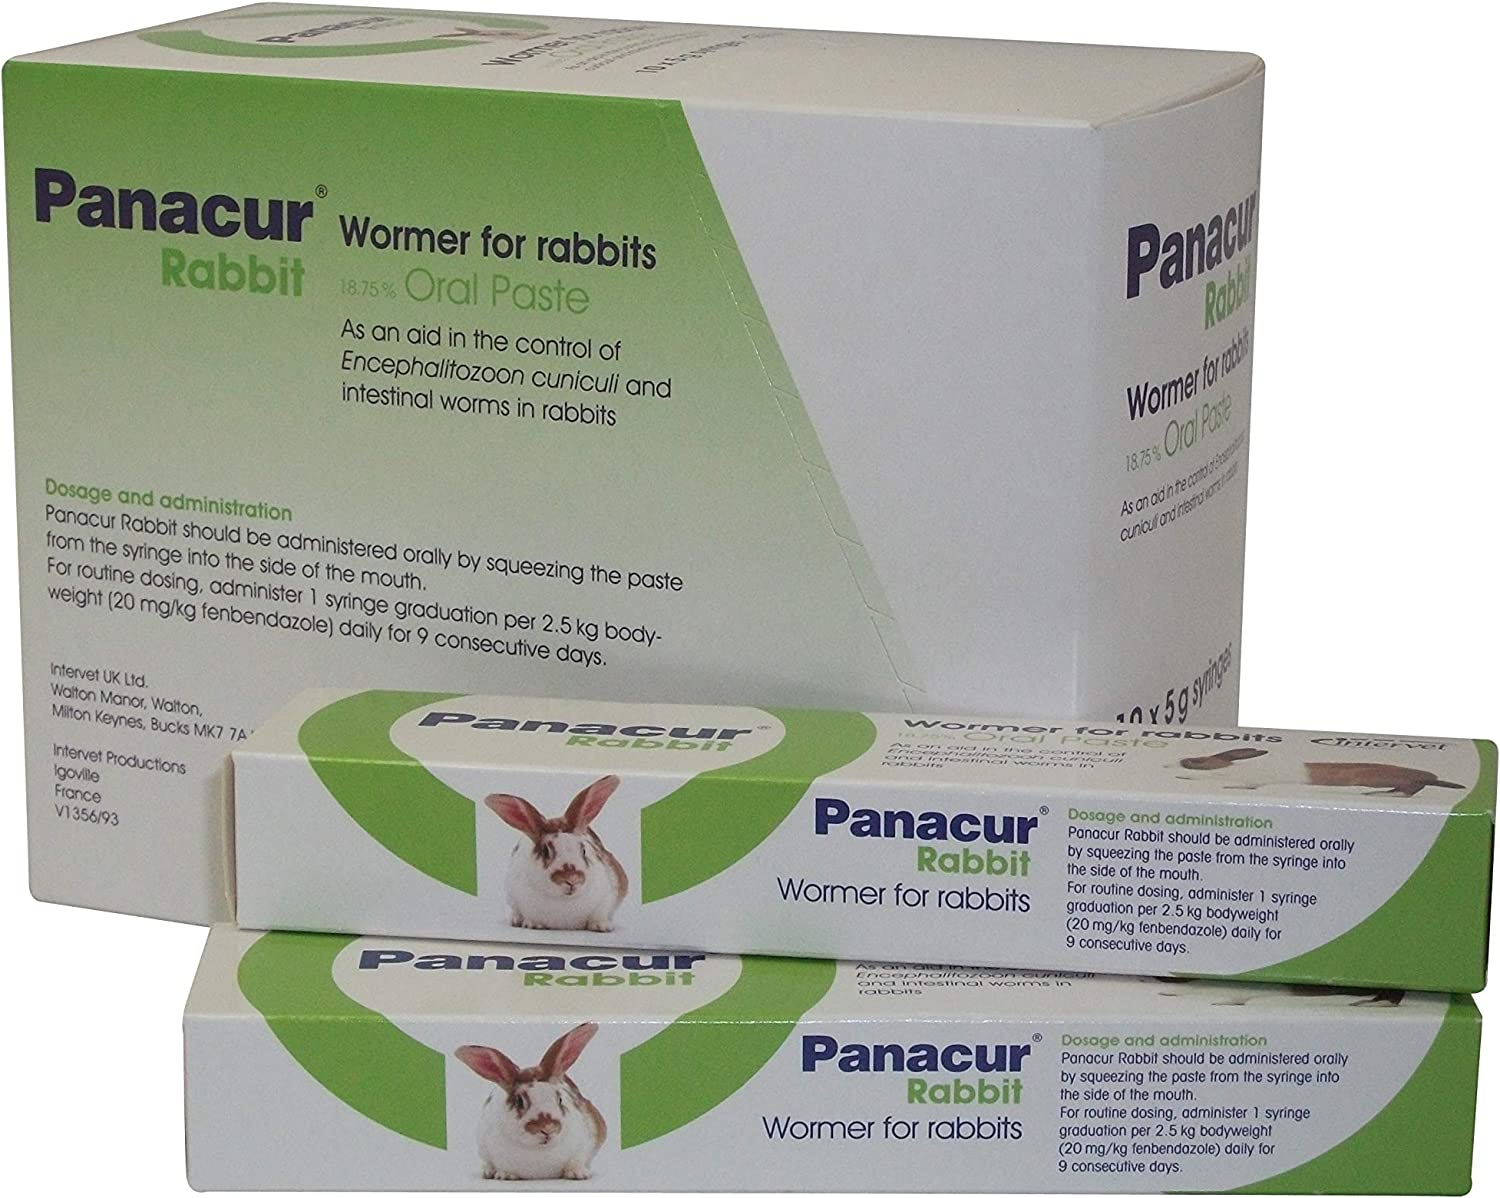 MSD ANIMAL HEALTH Panacur Paste For Rabbits